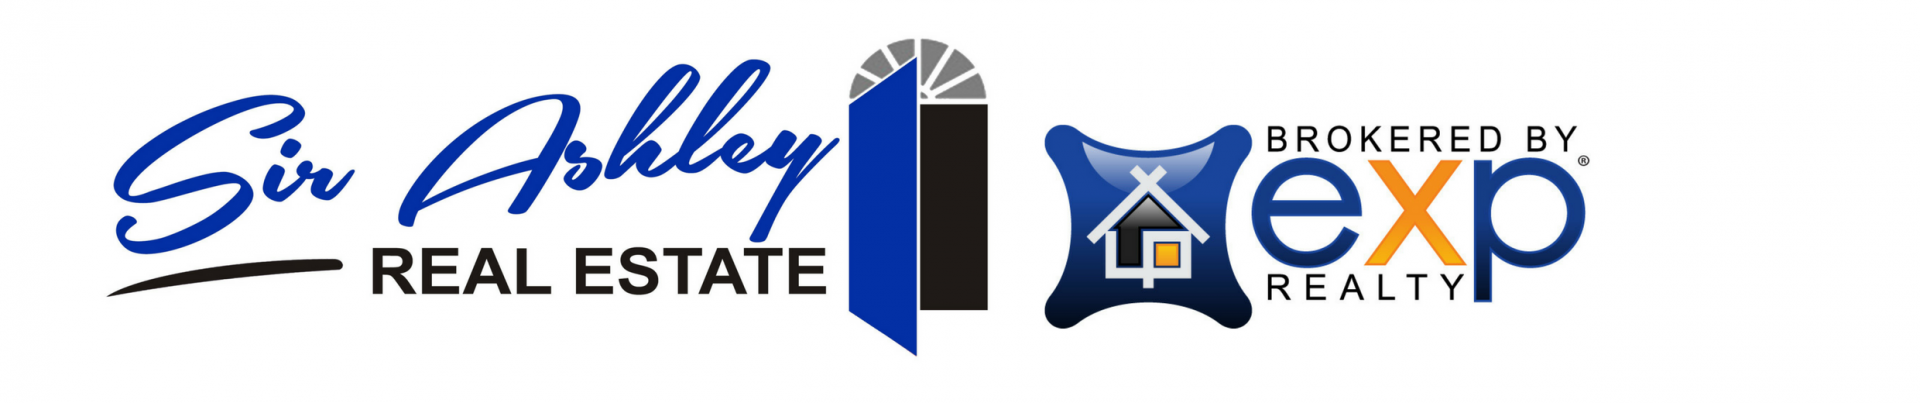 Charlotte's top real estate agents and neighborhood experts. Sir Ashley Real Estate is the perfect place for your Charlotte home buying and home selling needs. logo